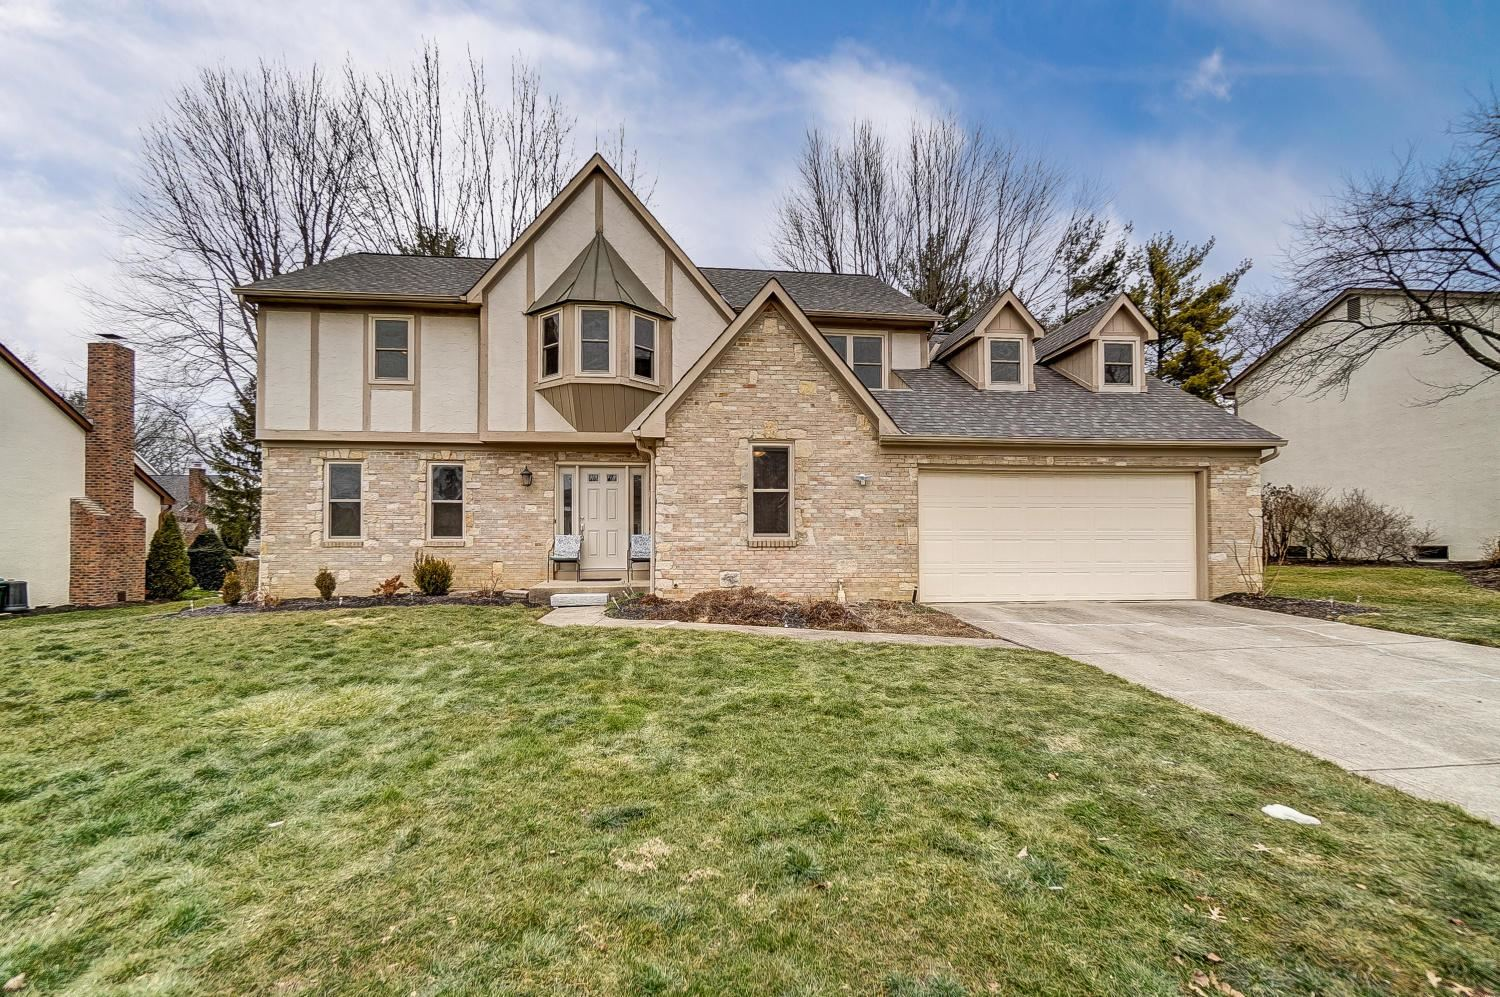 Photo of 994 Harbor View Drive, Westerville, OH 43081 (MLS # 221005665)